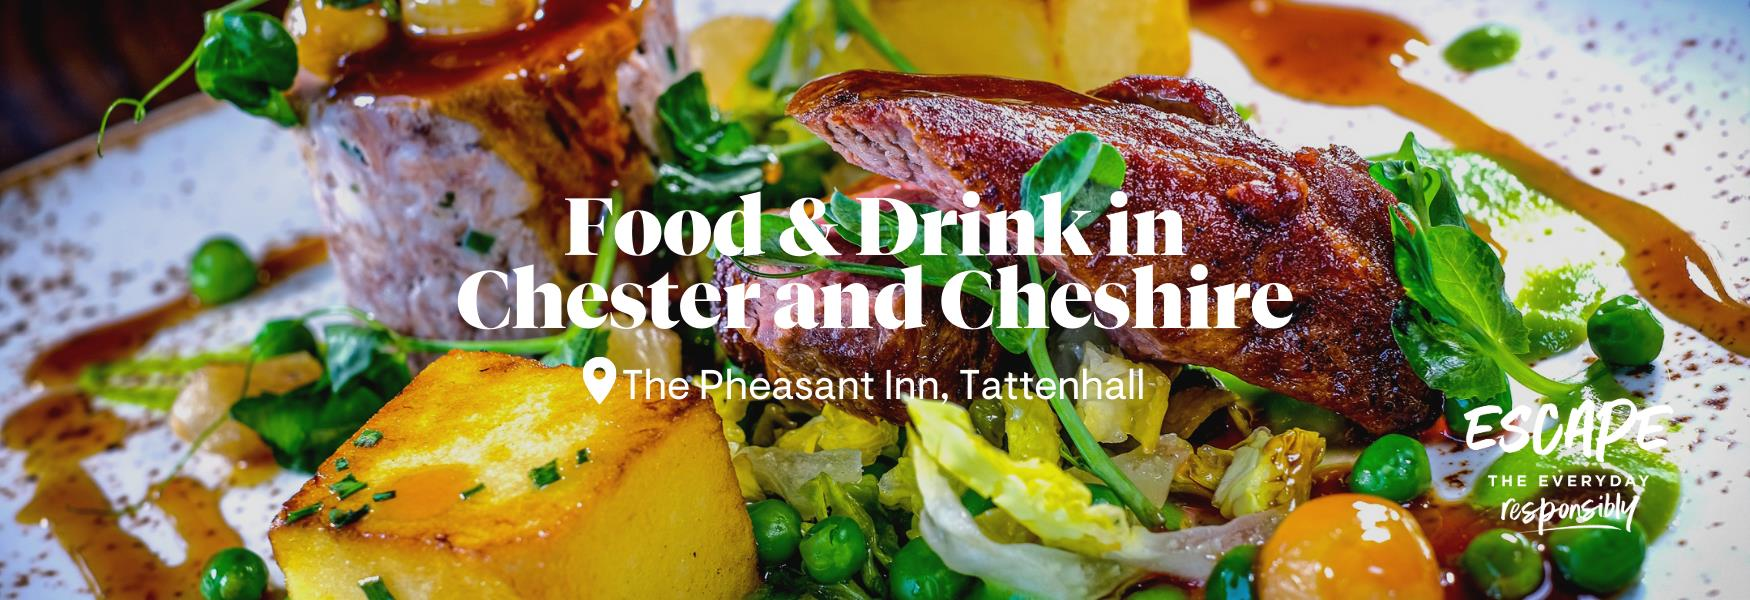 Food & Drink in Chester and Cheshire